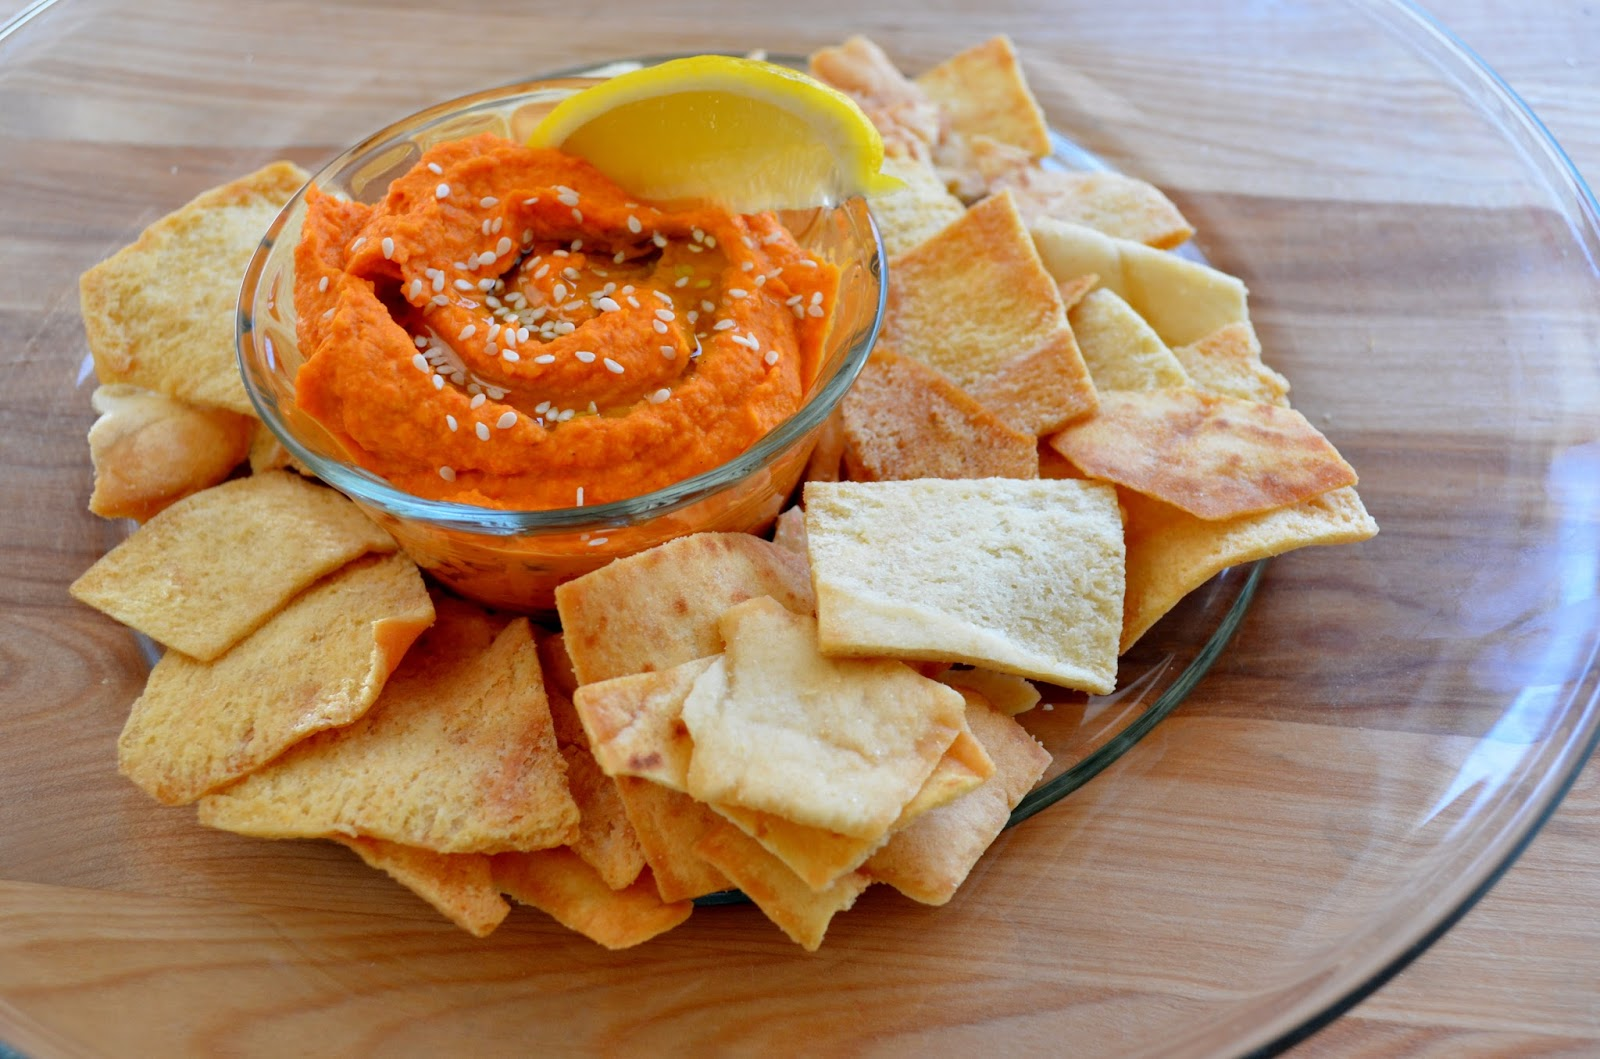 Basil: Roasted Garlic and Red Pepper Hummus